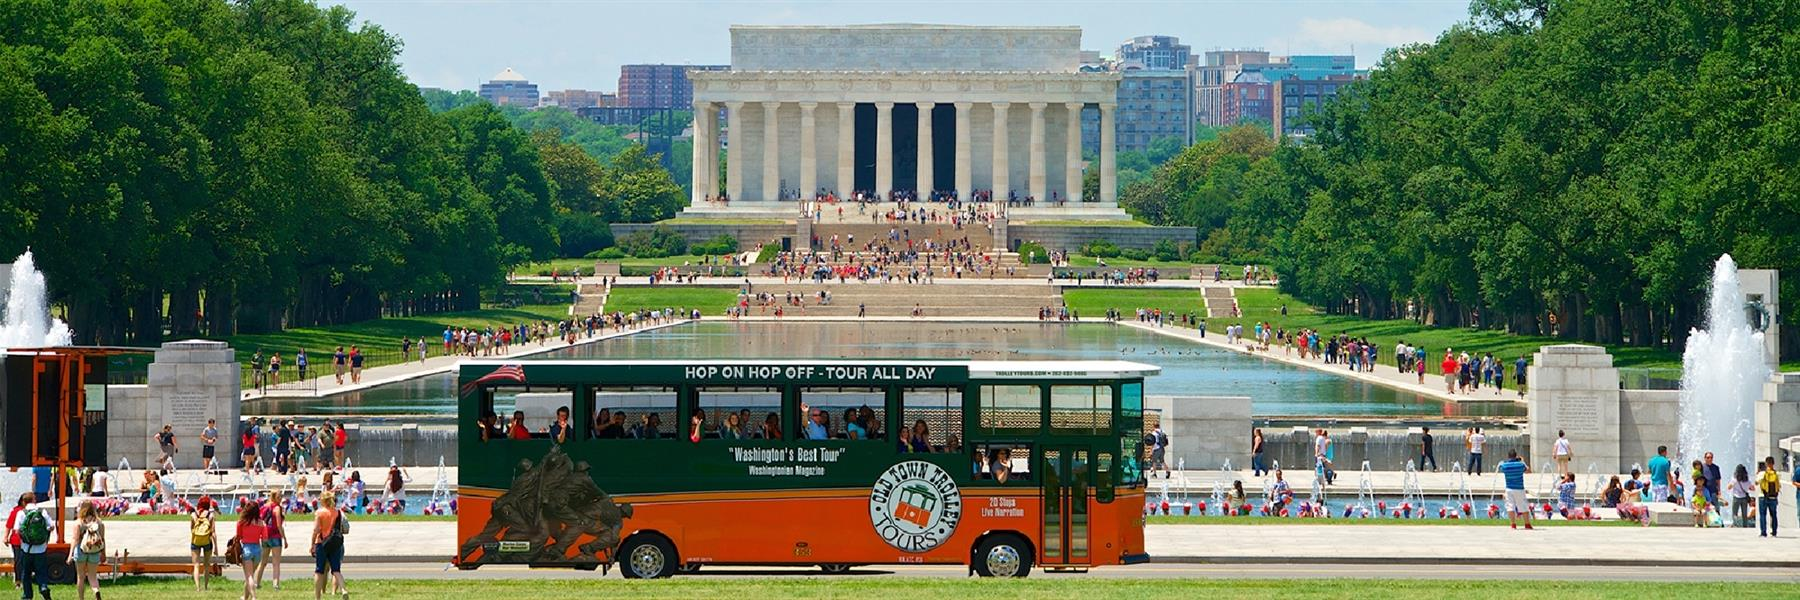 Old Town Trolley Tours of Washington DC in Washington, District of Columbia